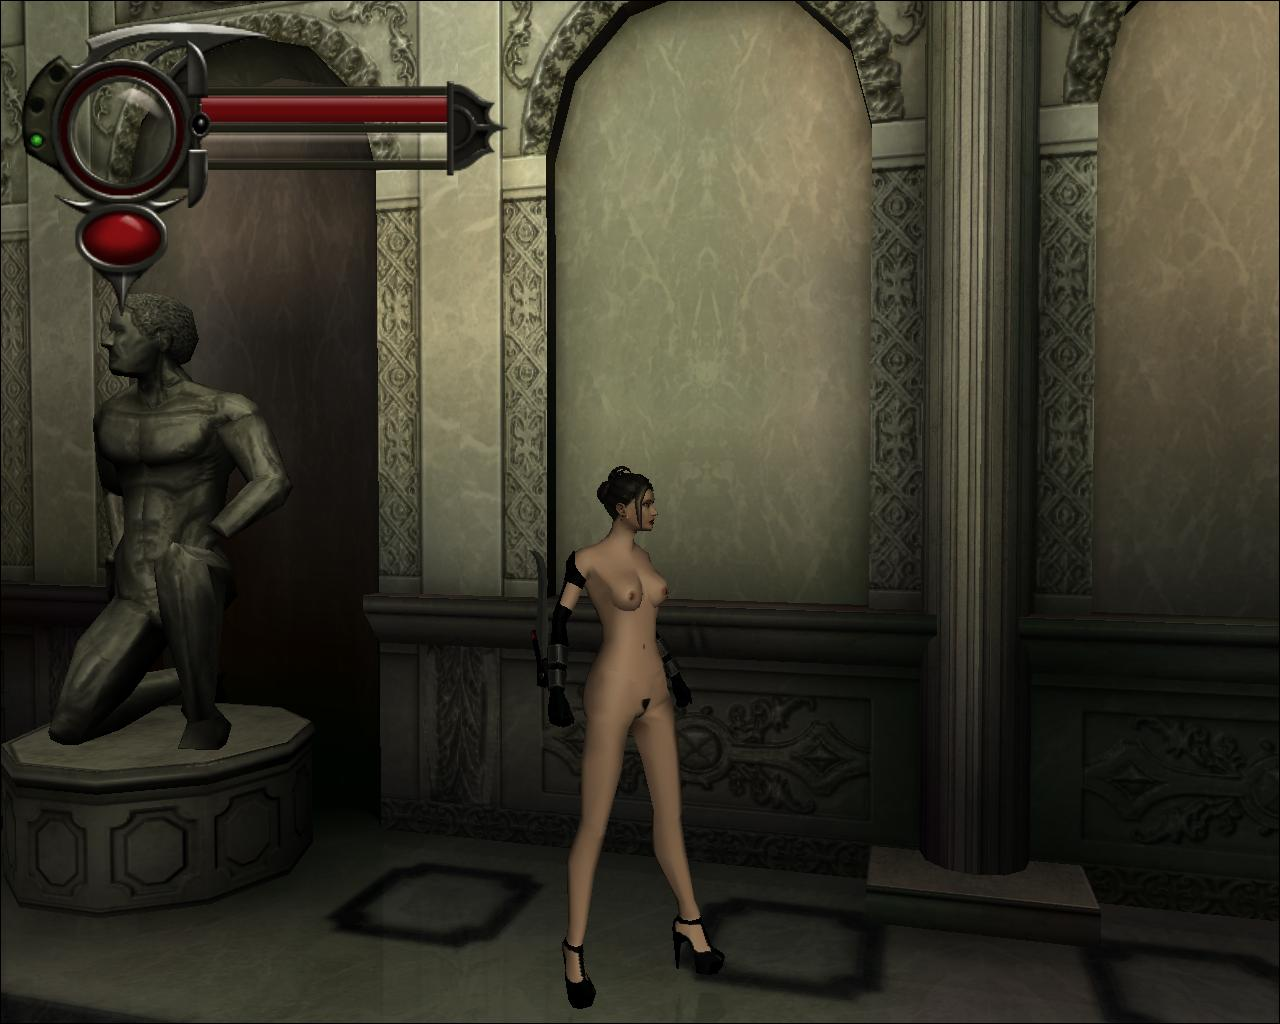 Bloodrayne 2 nude mod zip sex photo